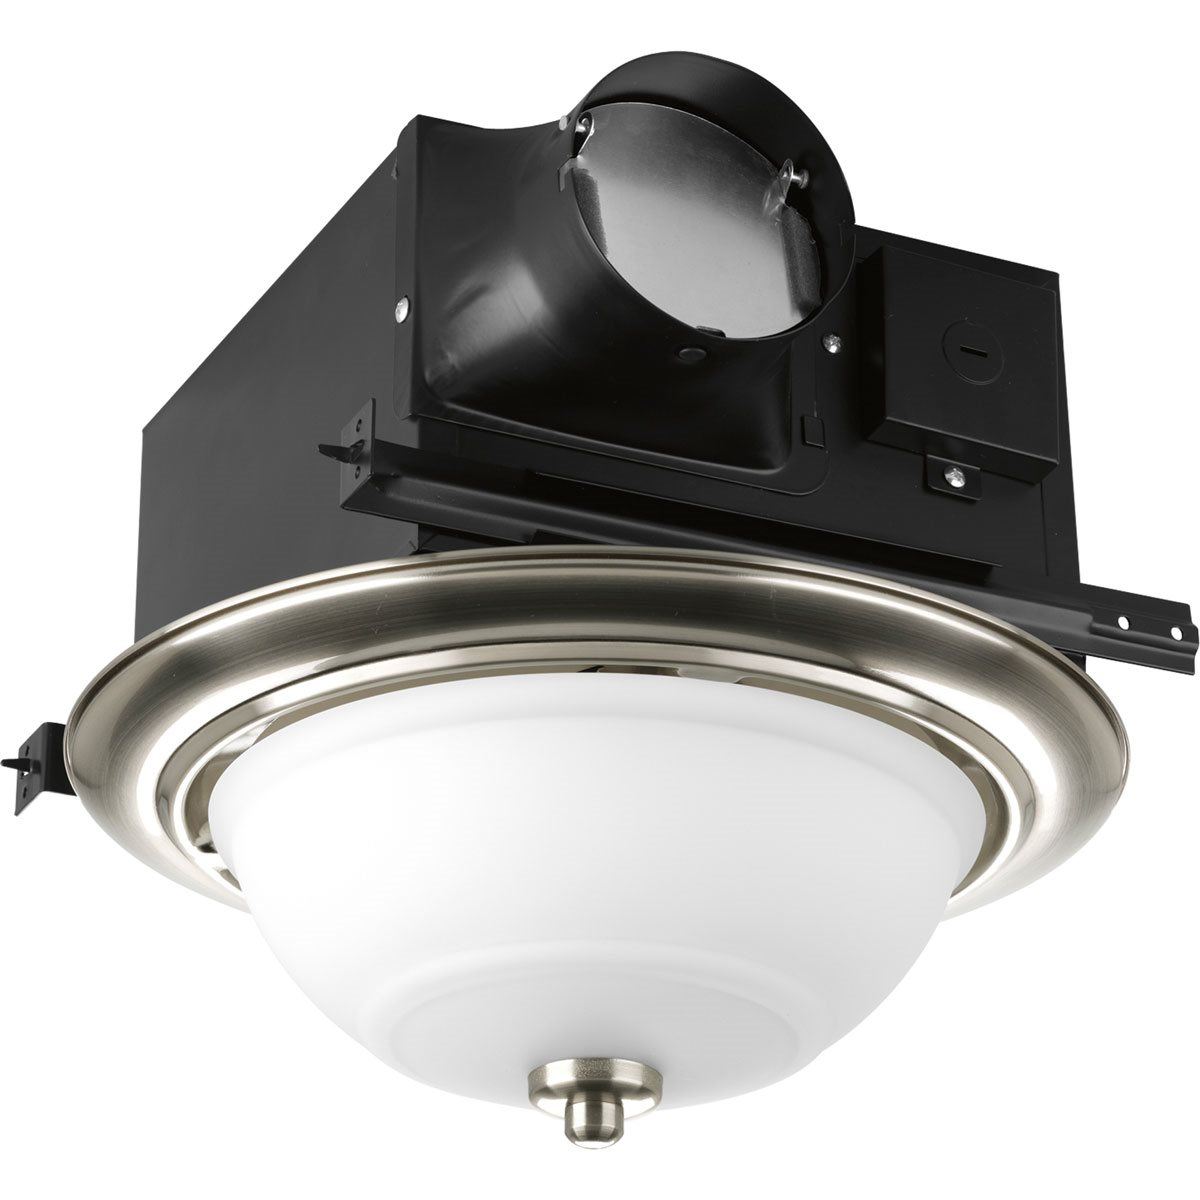 Progress Lighting Pv008 Decorative Bathroom Exhaust Fan Pg Pv008